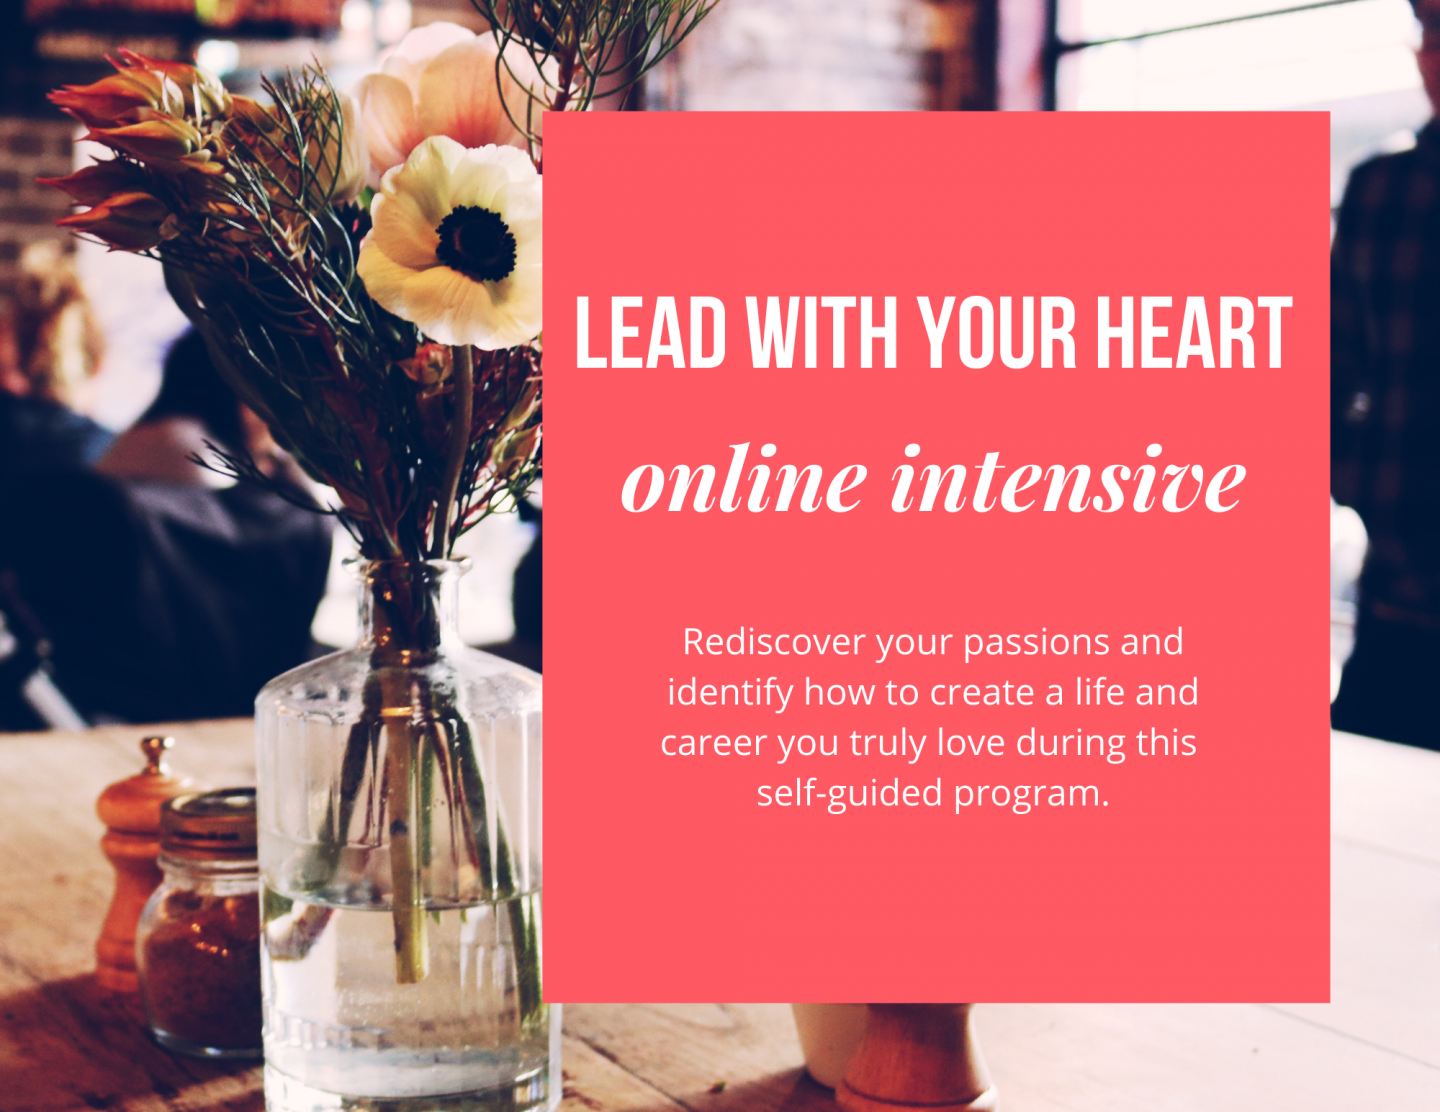 lead with your heart online intensive brielle friedman rediscover your passions purchase course now